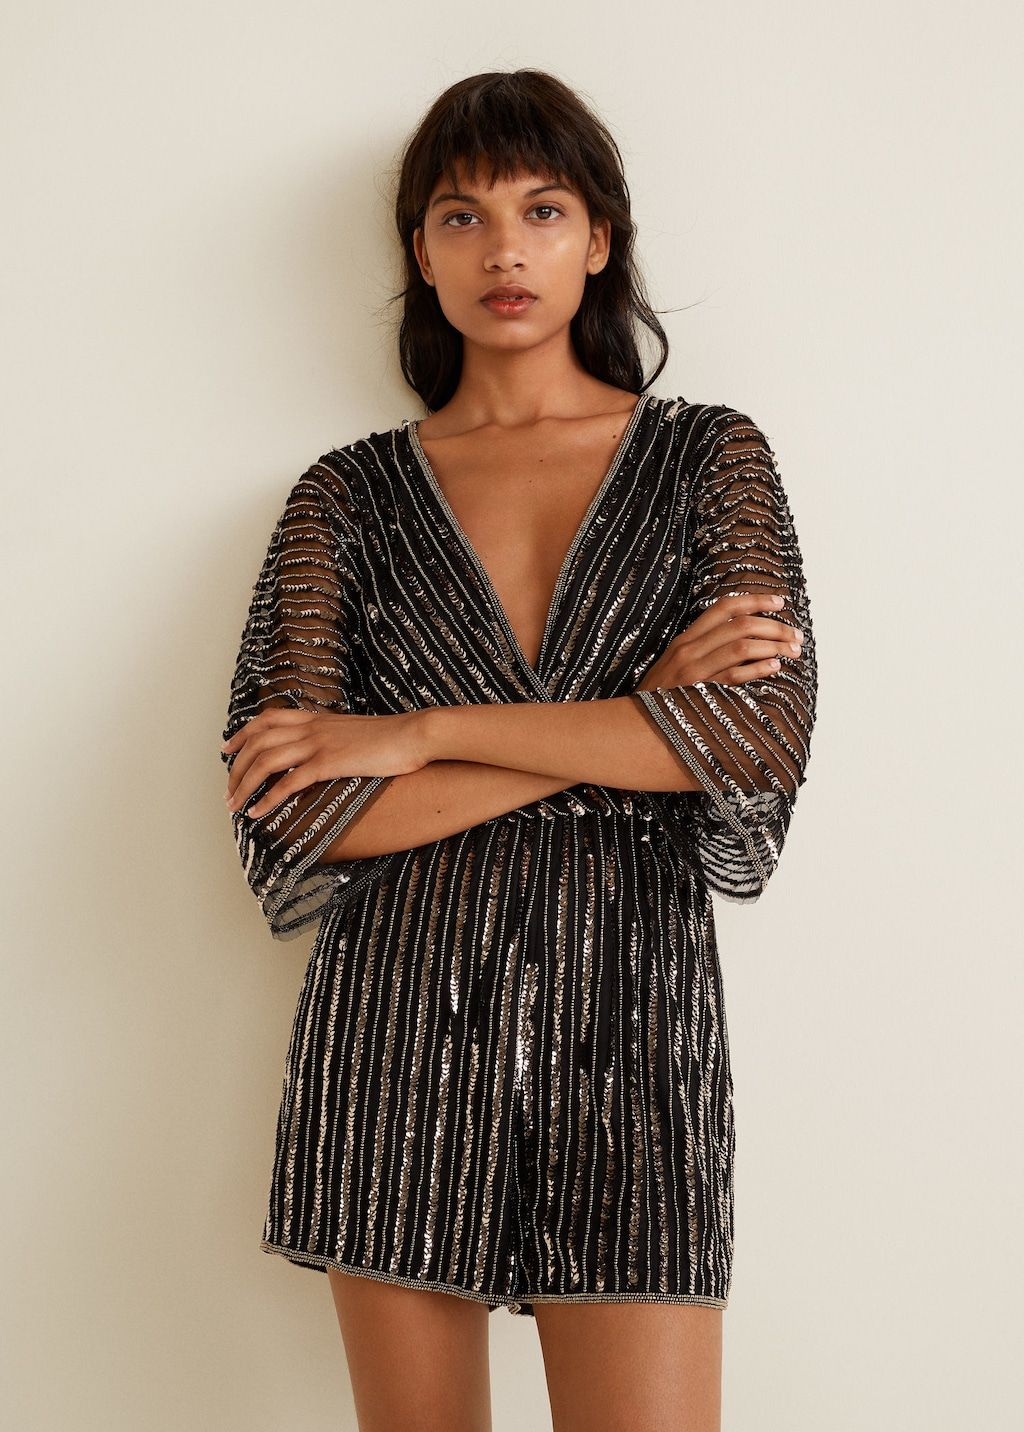 713bbafb8d0 Sequins jumpsuit. Sequin Jumpsuit New Years Eve Outfit ...